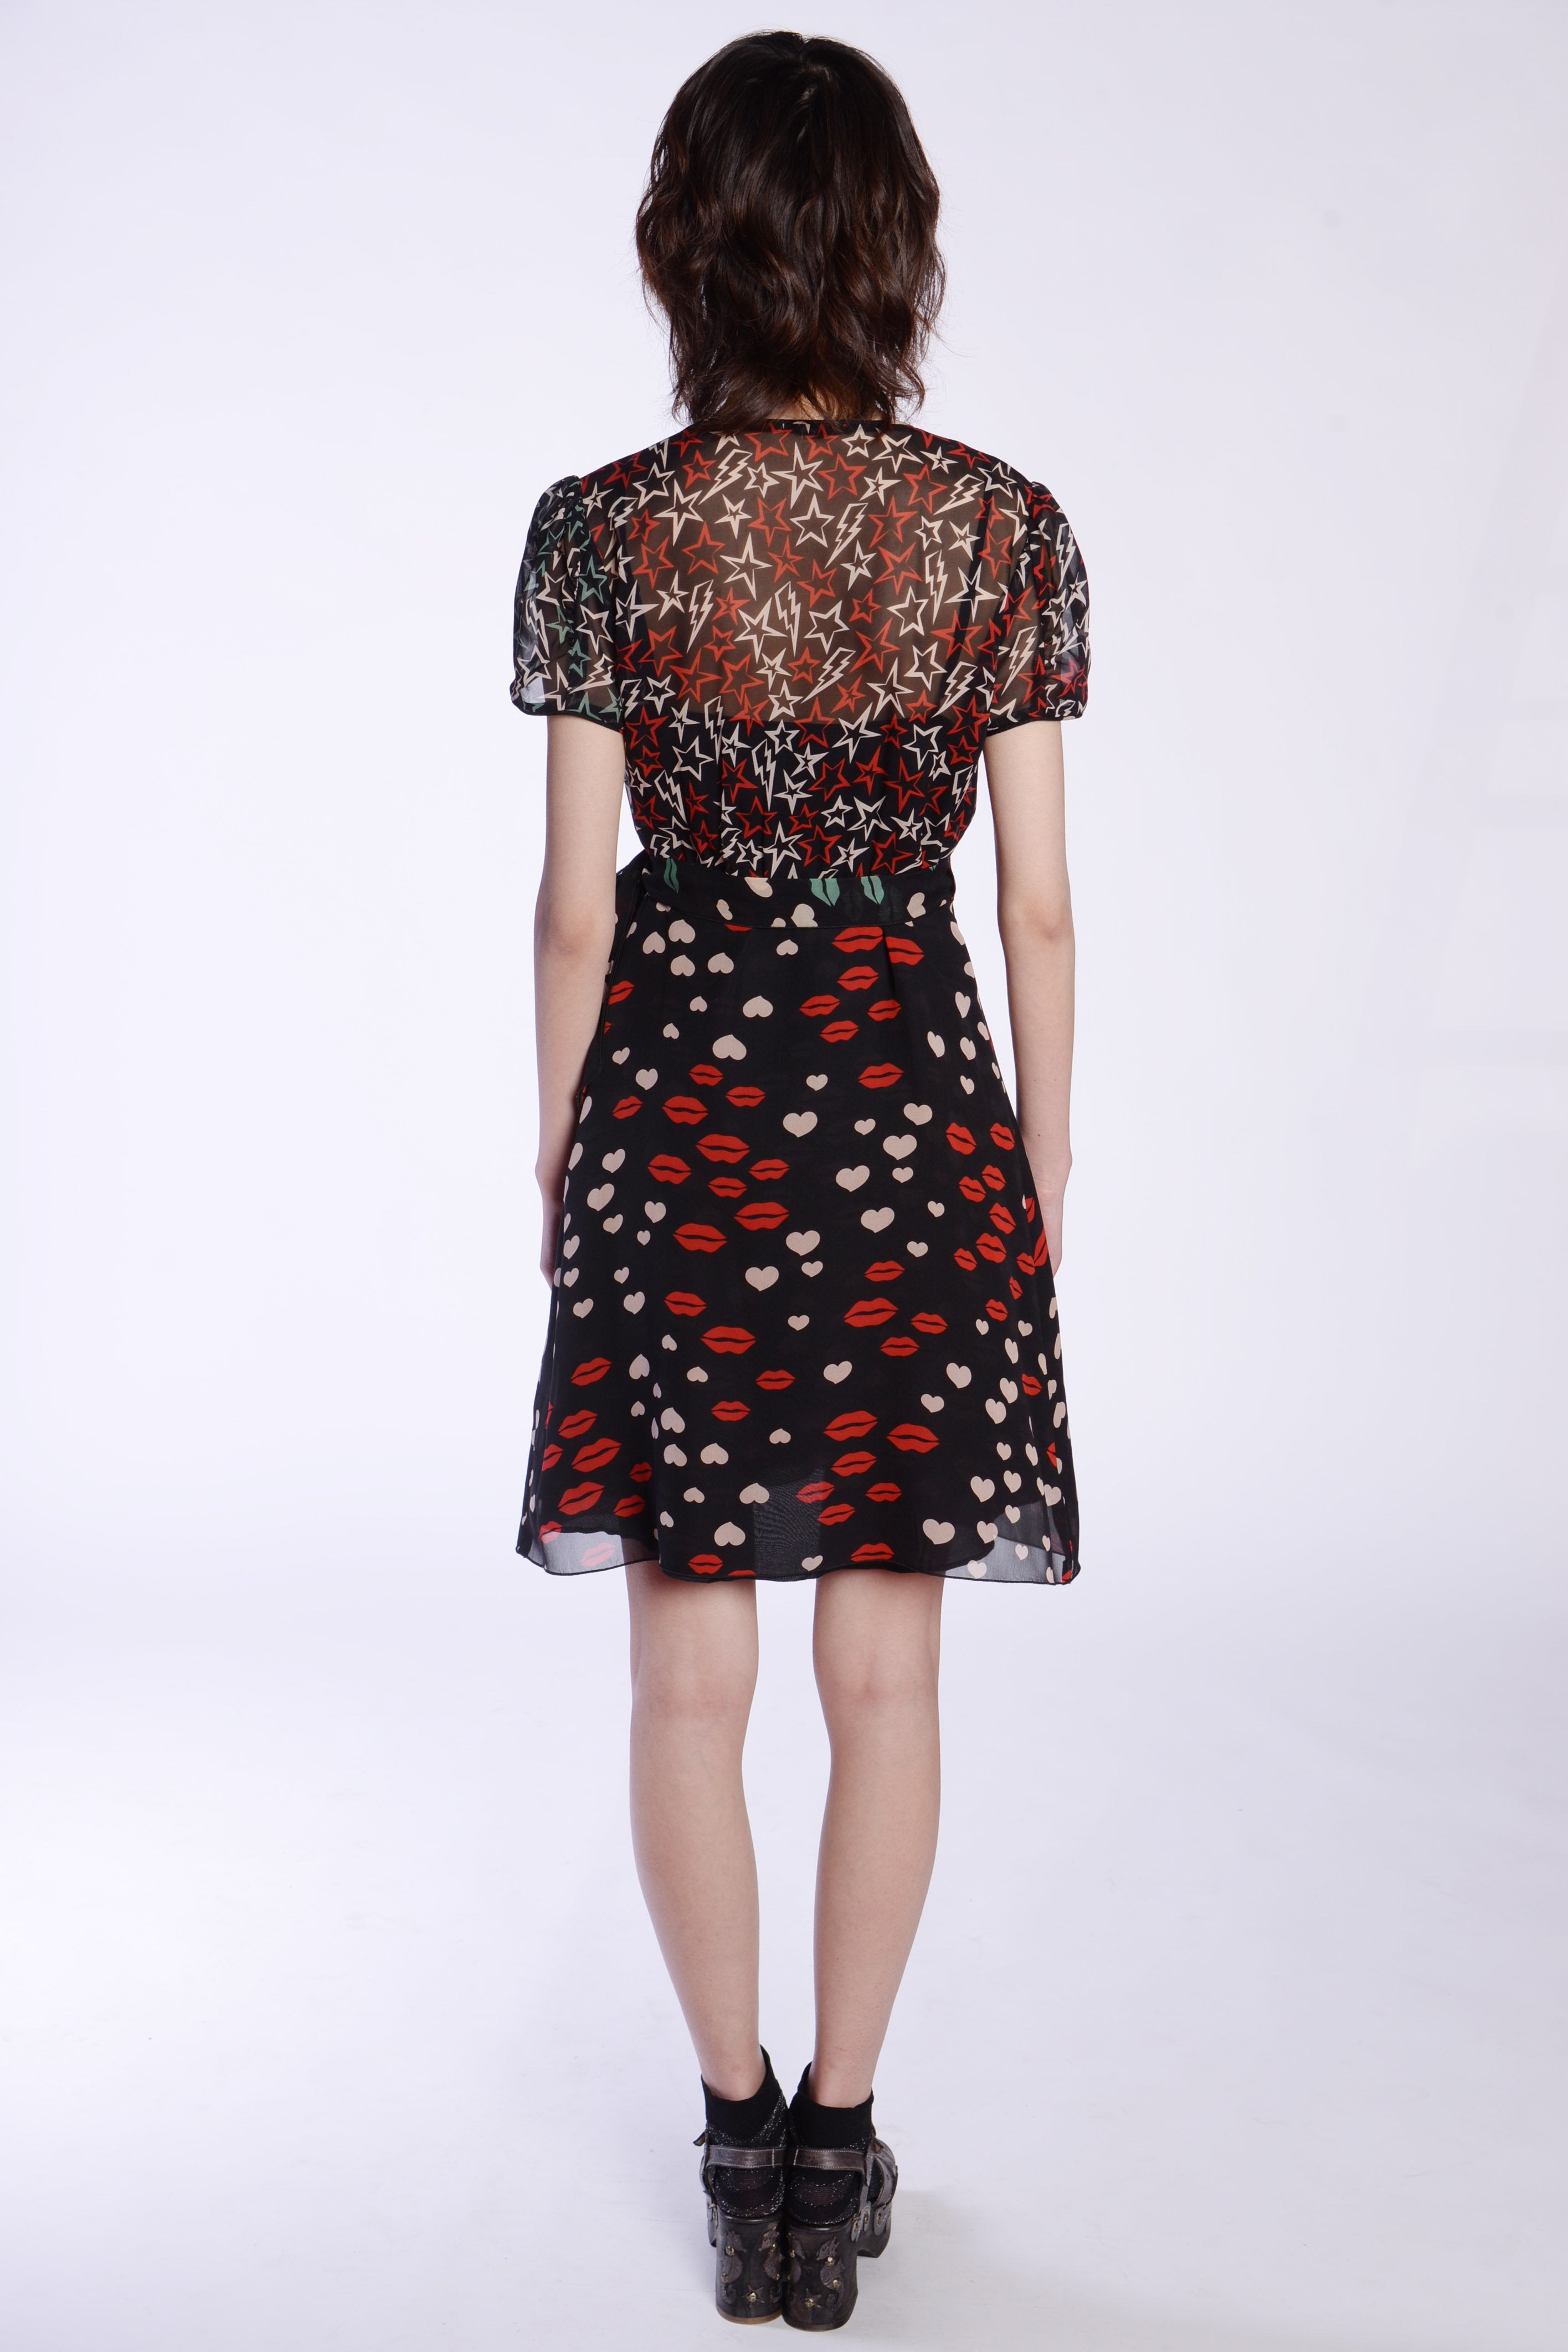 Sweetheart's Kiss Chiffon Wrap Dress - Anna Sui